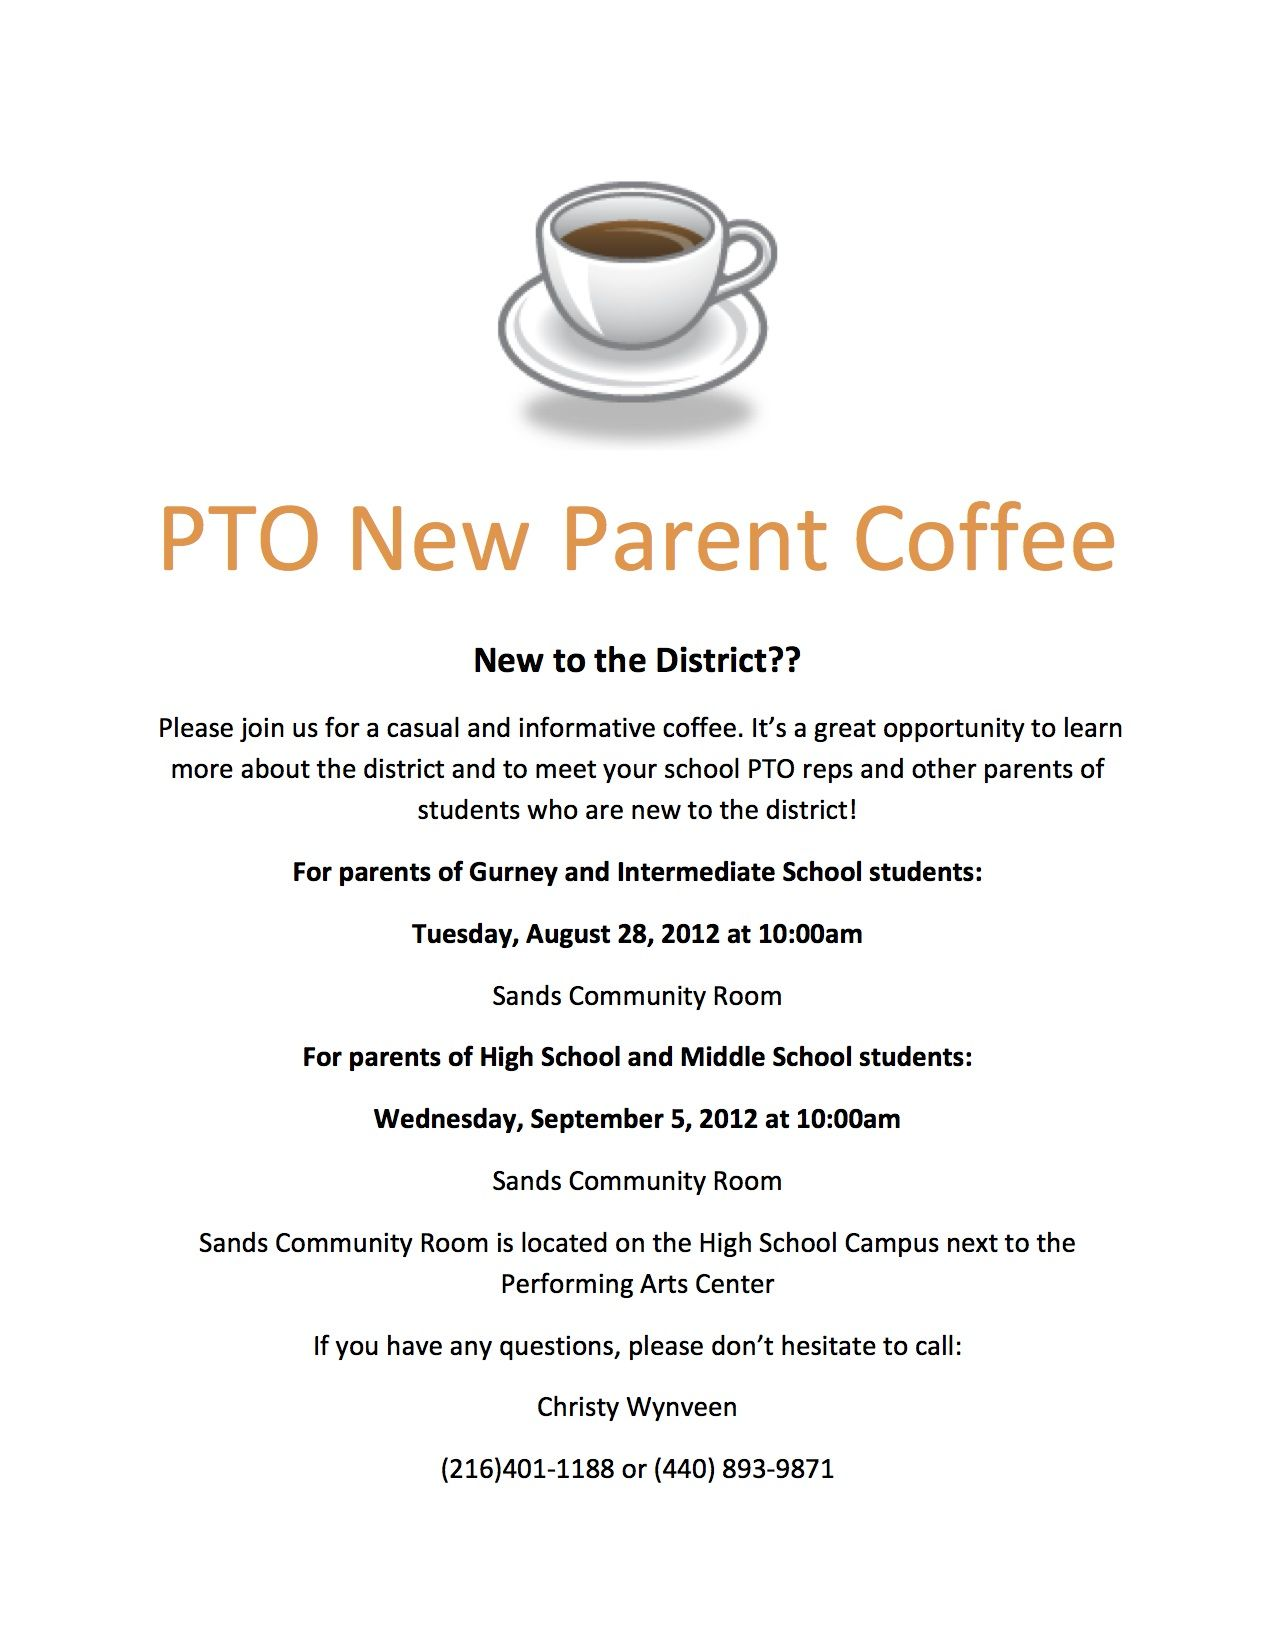 Pto Communication Get Great At Two Things  Pta Parents And School